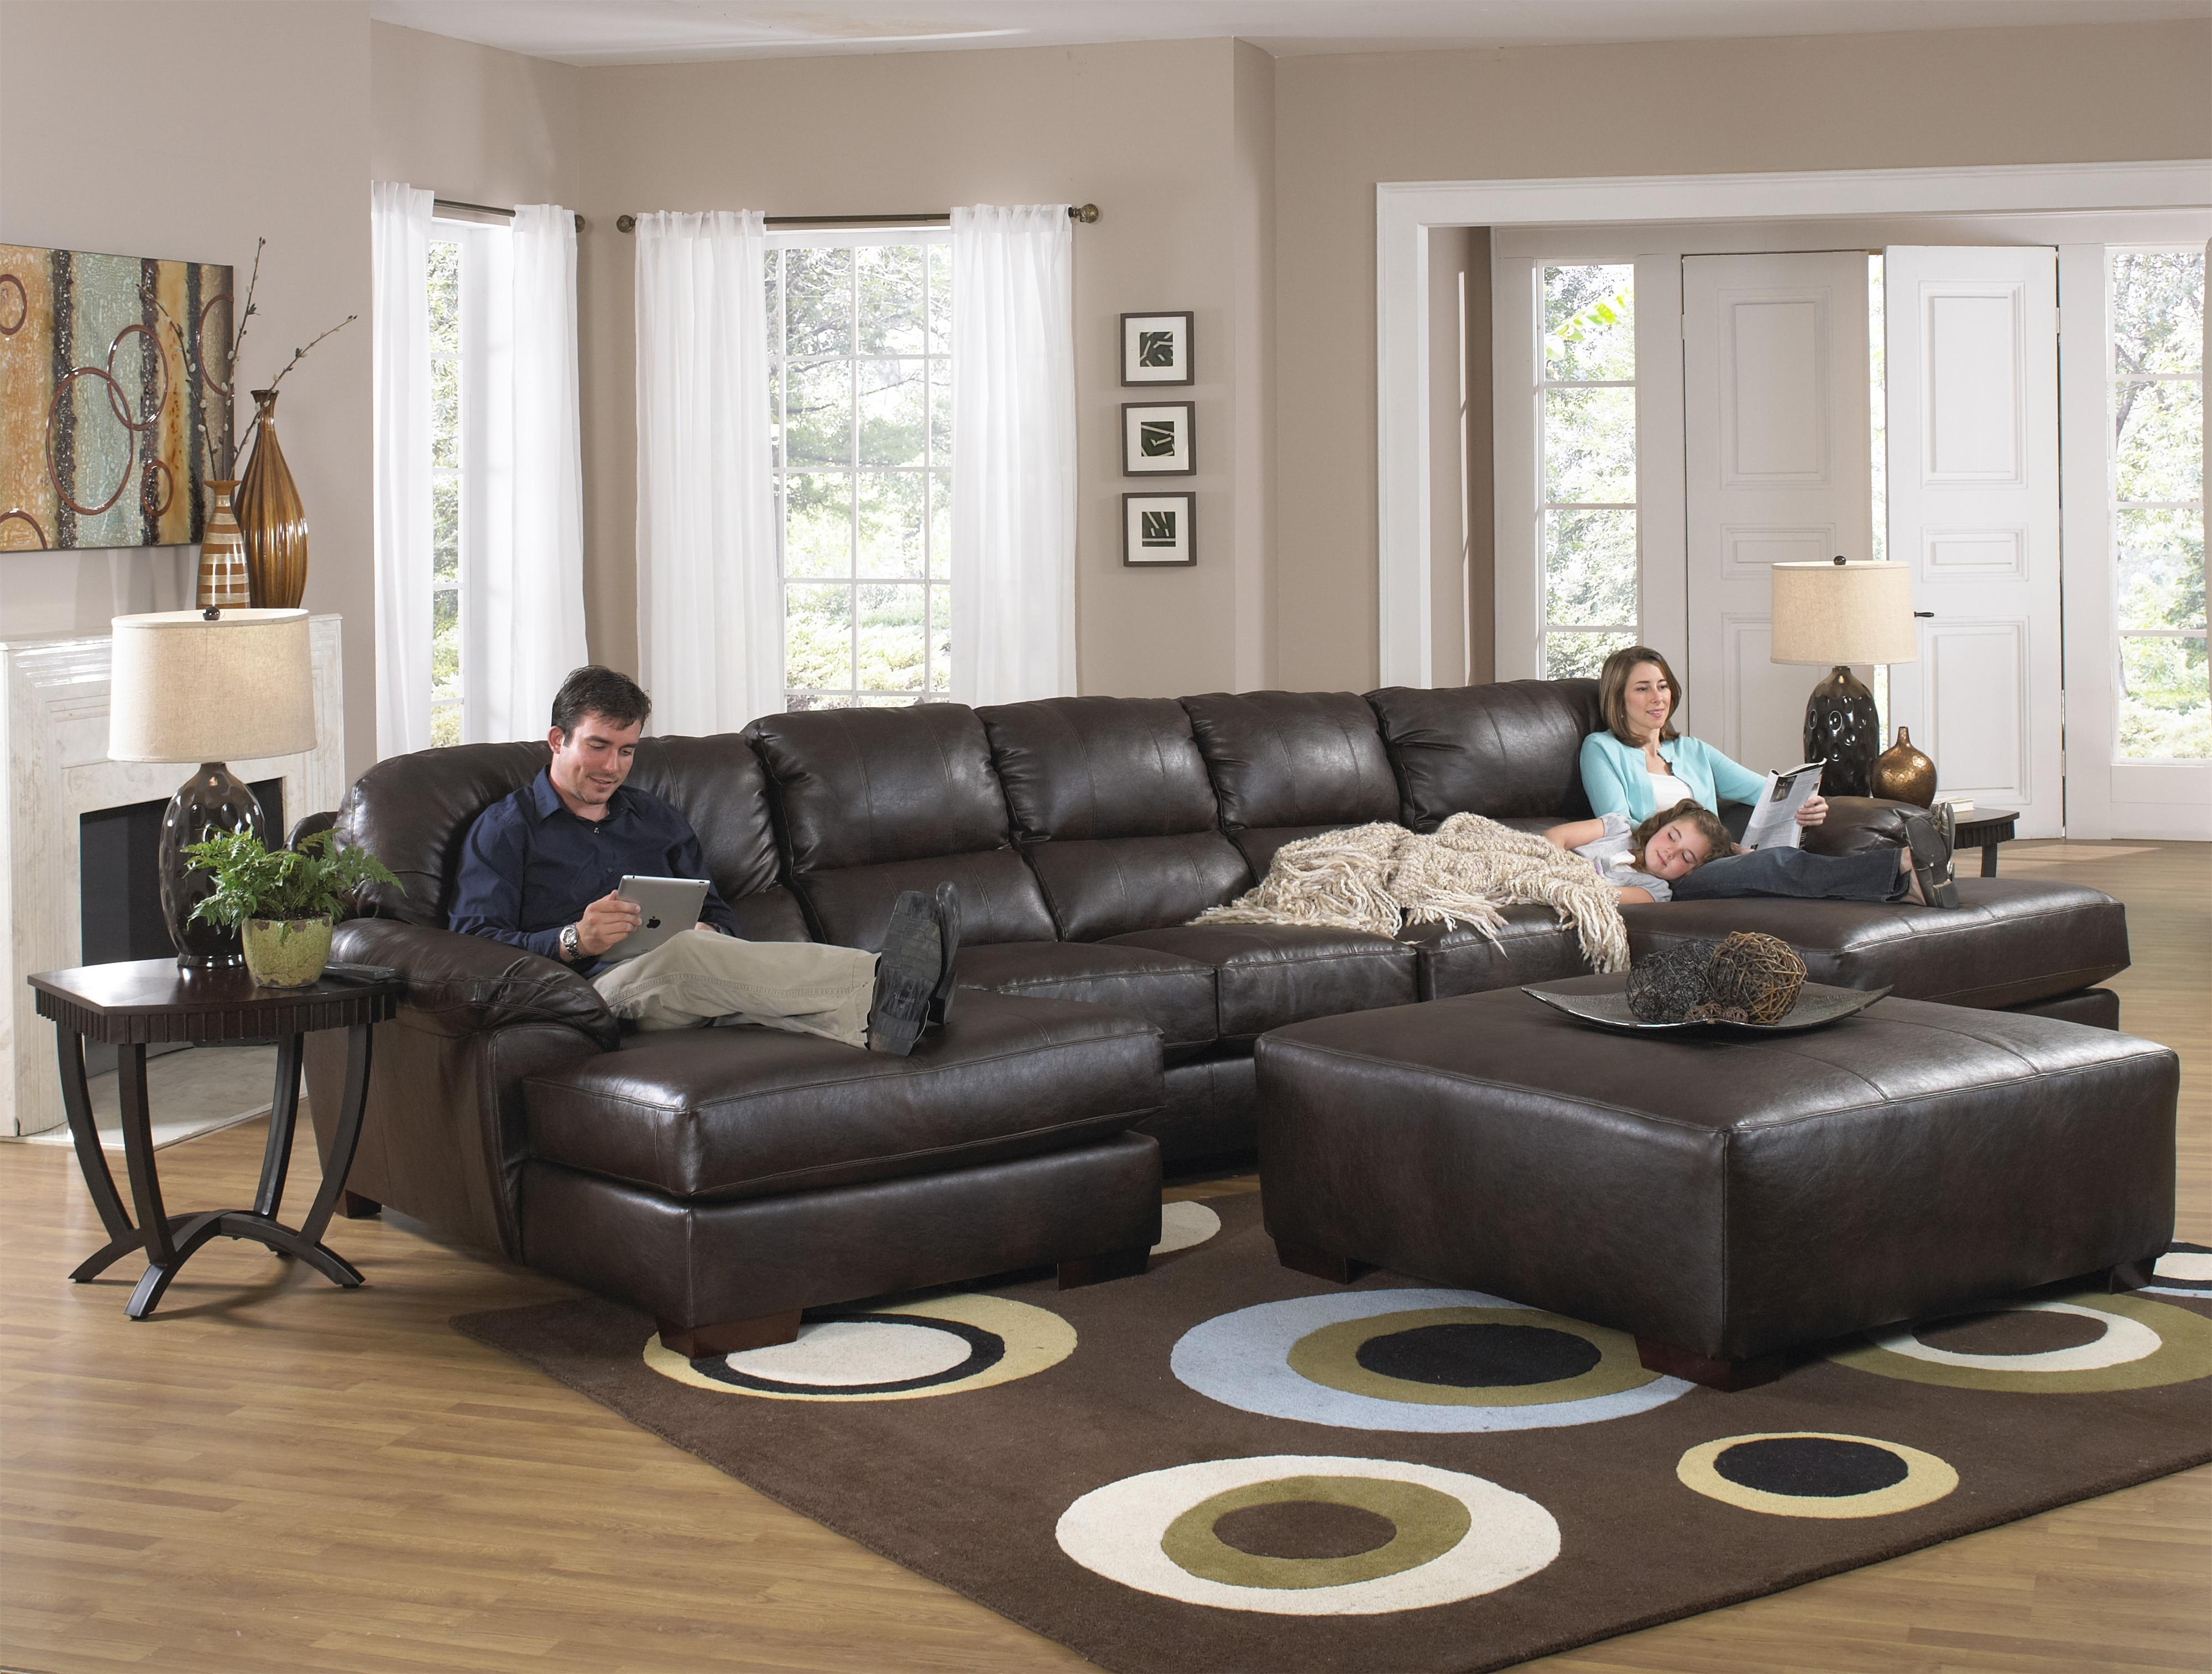 Popular Ethan Allen Sectional Sofas Double Chaise Sectional U Shaped Within Leather Sectionals With Chaise Lounge (View 4 of 15)